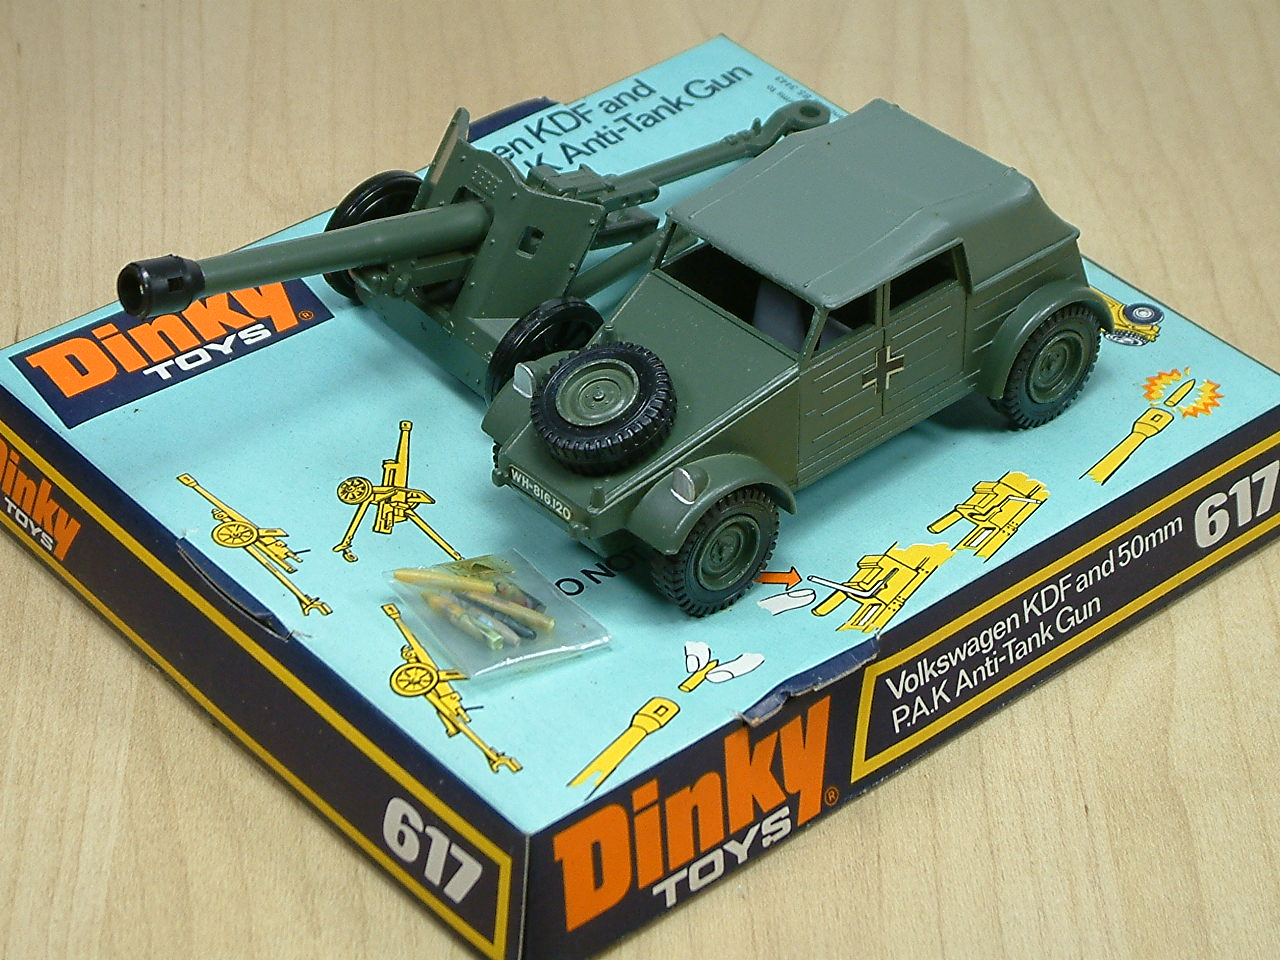 German 50 Mm Anti Tank Gun: Dinky 617, Volkswagen KDF & 50mm Anti-Tank Gun.